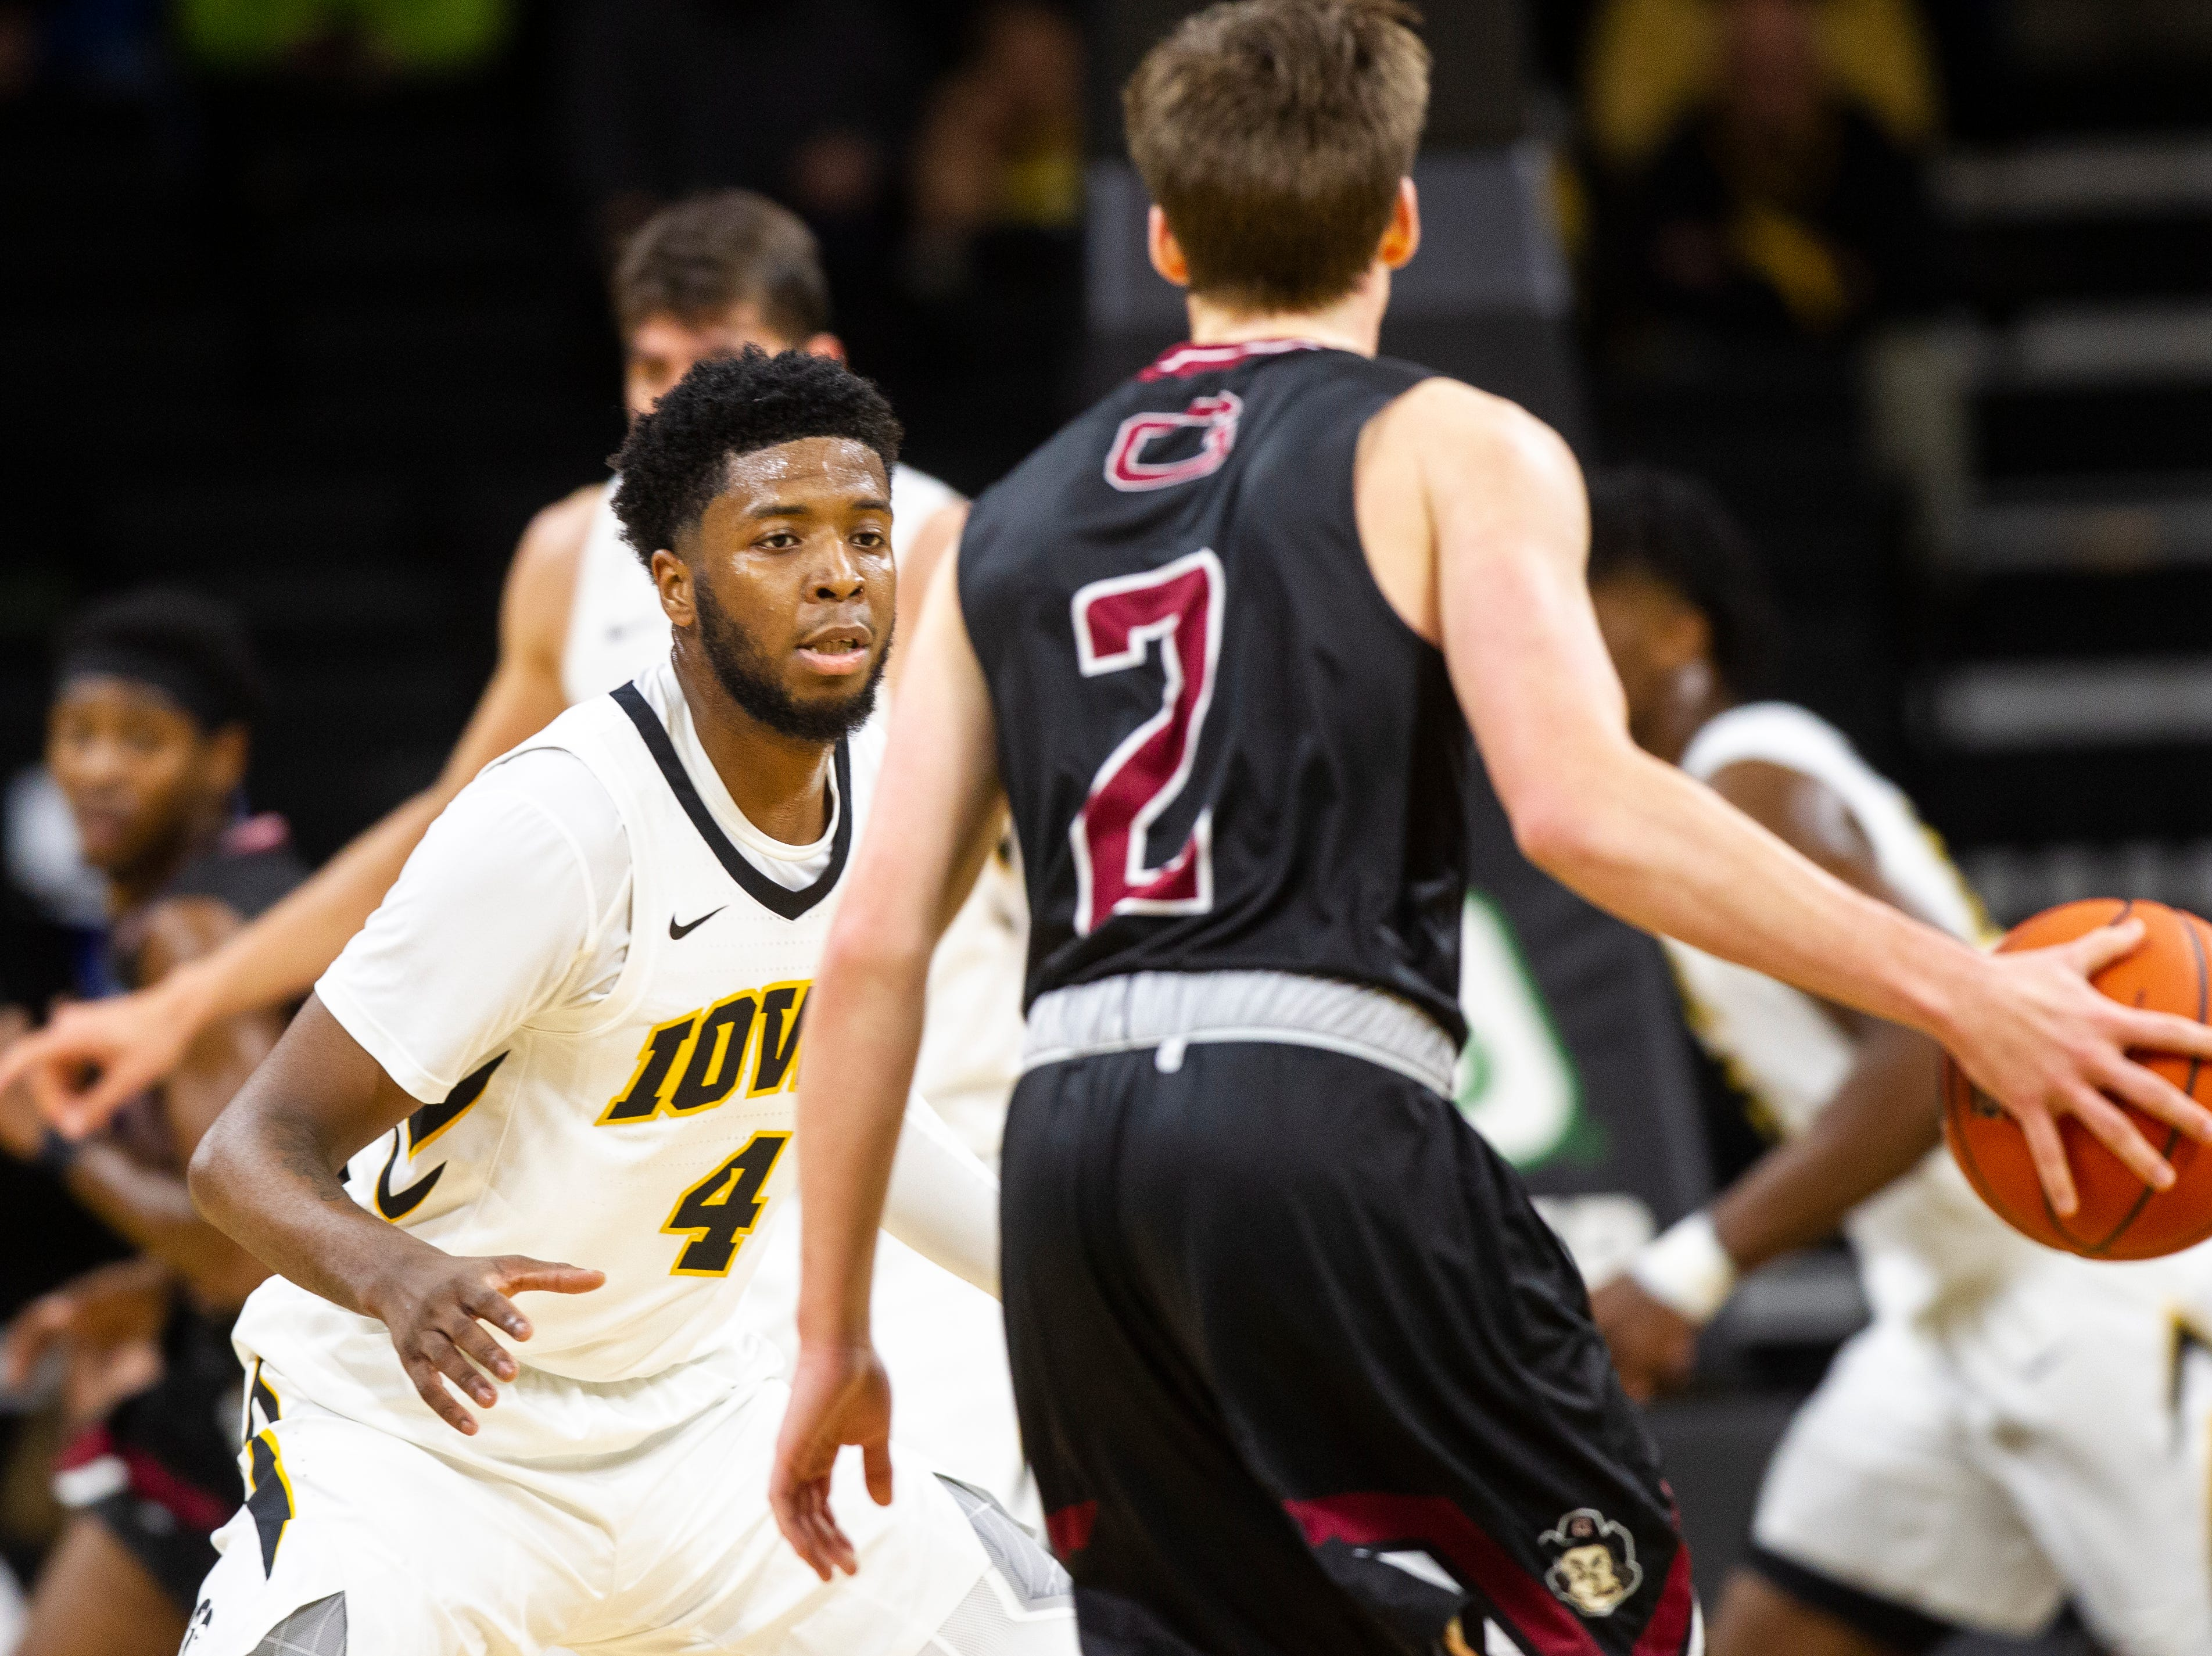 Iowa guard Isaiah Moss (4) defends Guilford's Joah Logan (2) during a men's basketball exhibition game on Sunday, Nov. 4, 2018, at Carver-Hawkeye Arena in Iowa City.